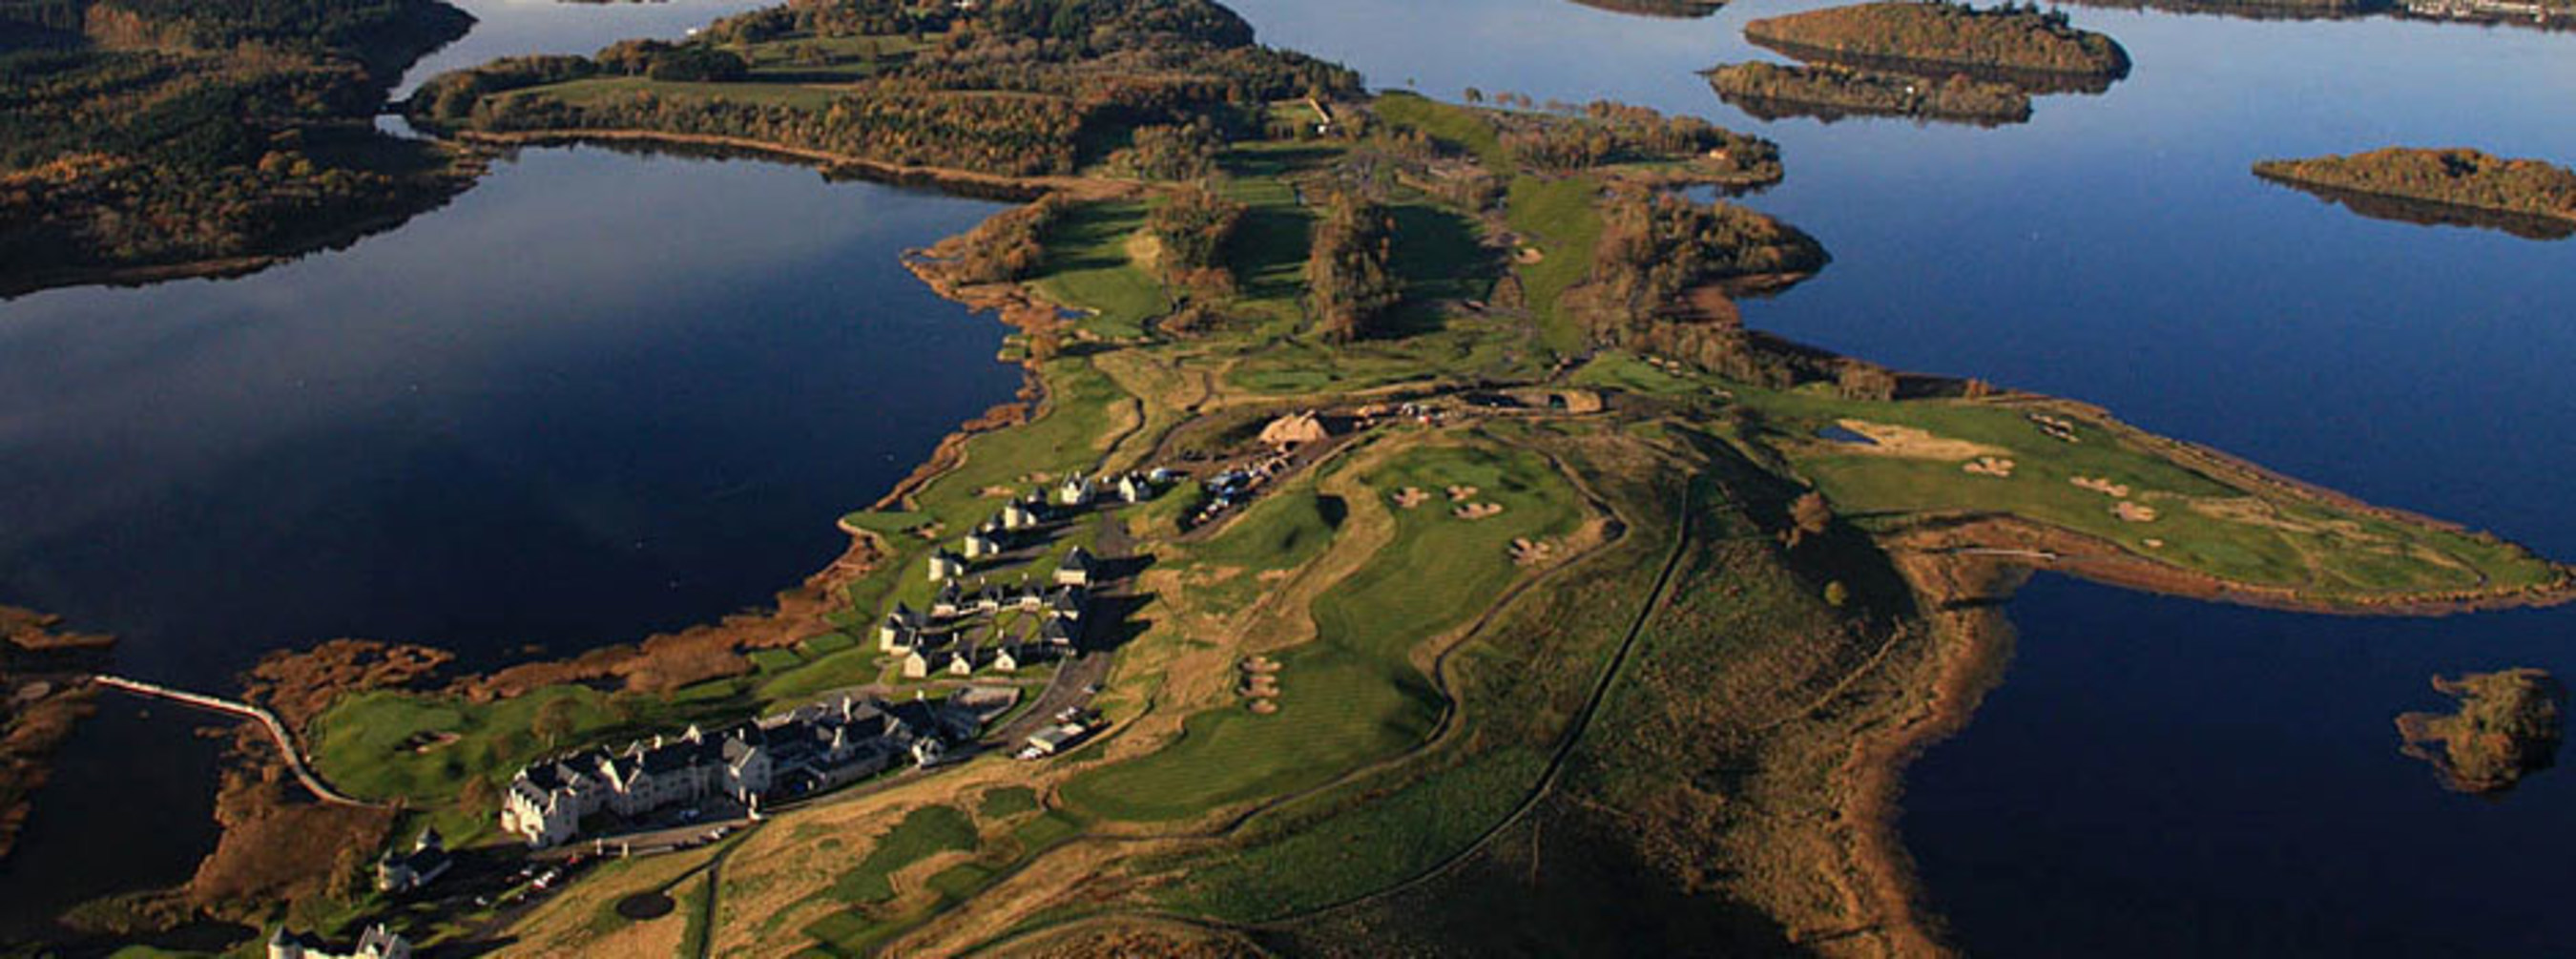 AERIAL VIEW OF LOUGH ERNE RESORT, LUXURY HOTEL AND GOLF RESORT IN NORTHERN IRELAND